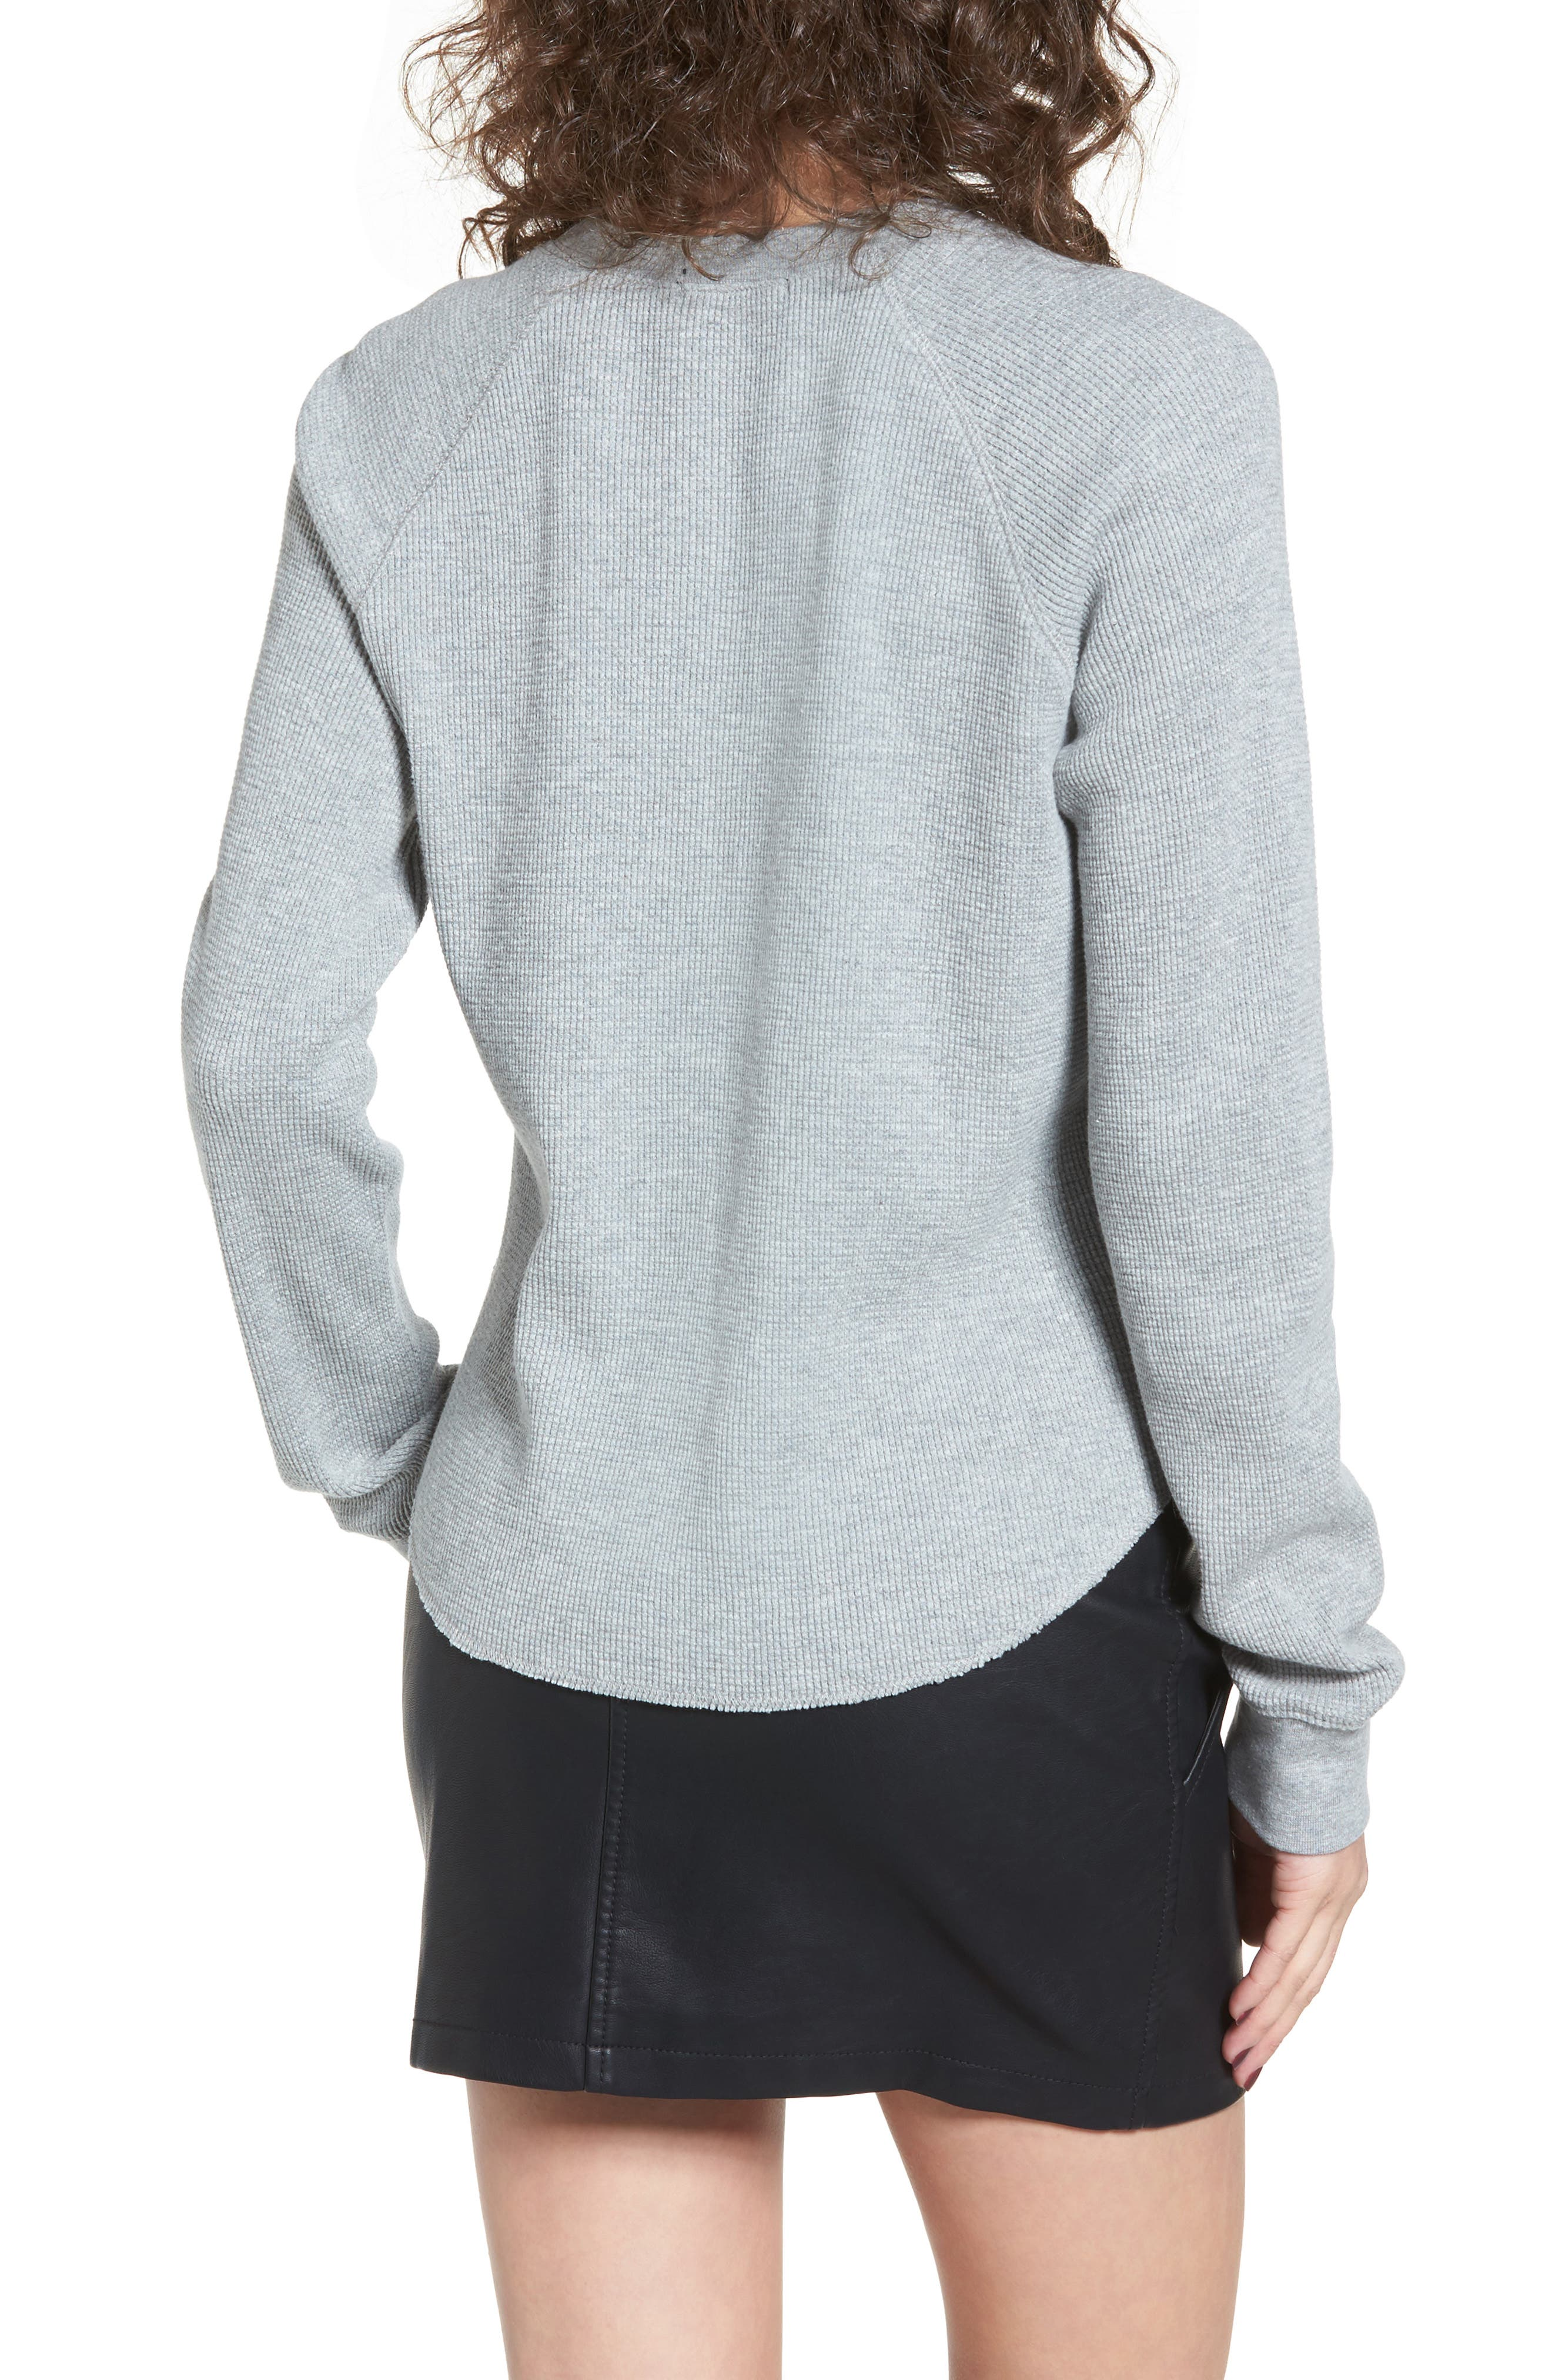 Dune Thermal Top,                             Alternate thumbnail 2, color,                             Heather Grey